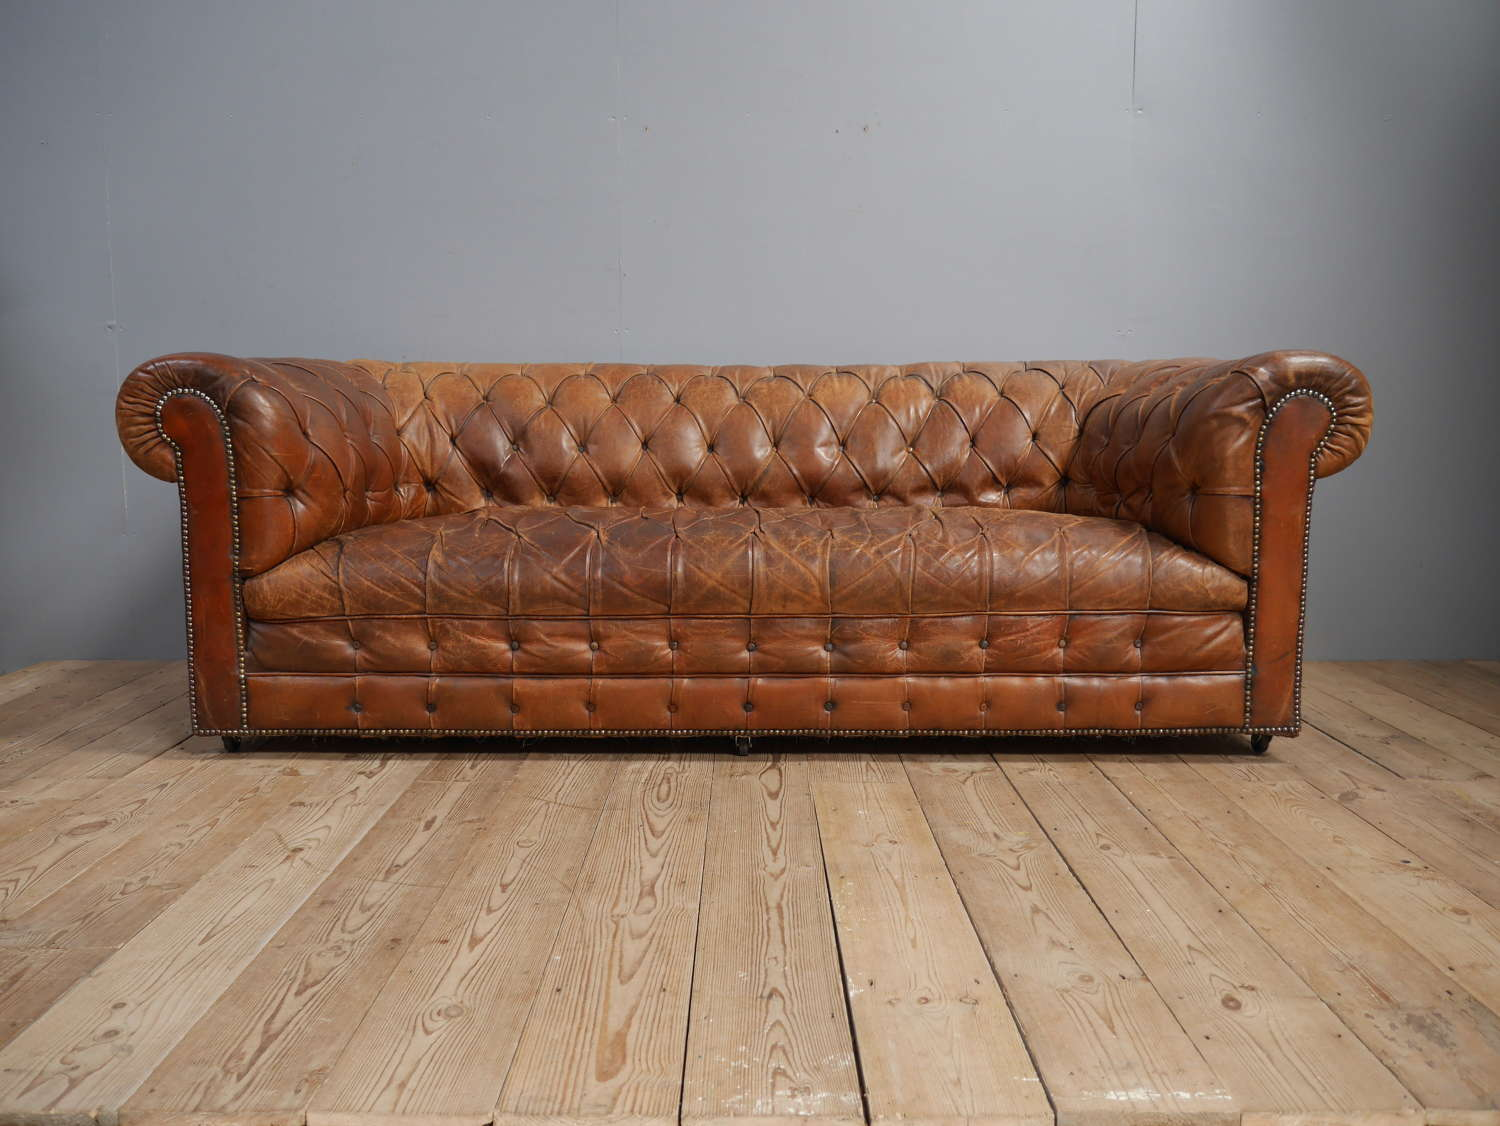 Leather Chesterfield Sofa c1930